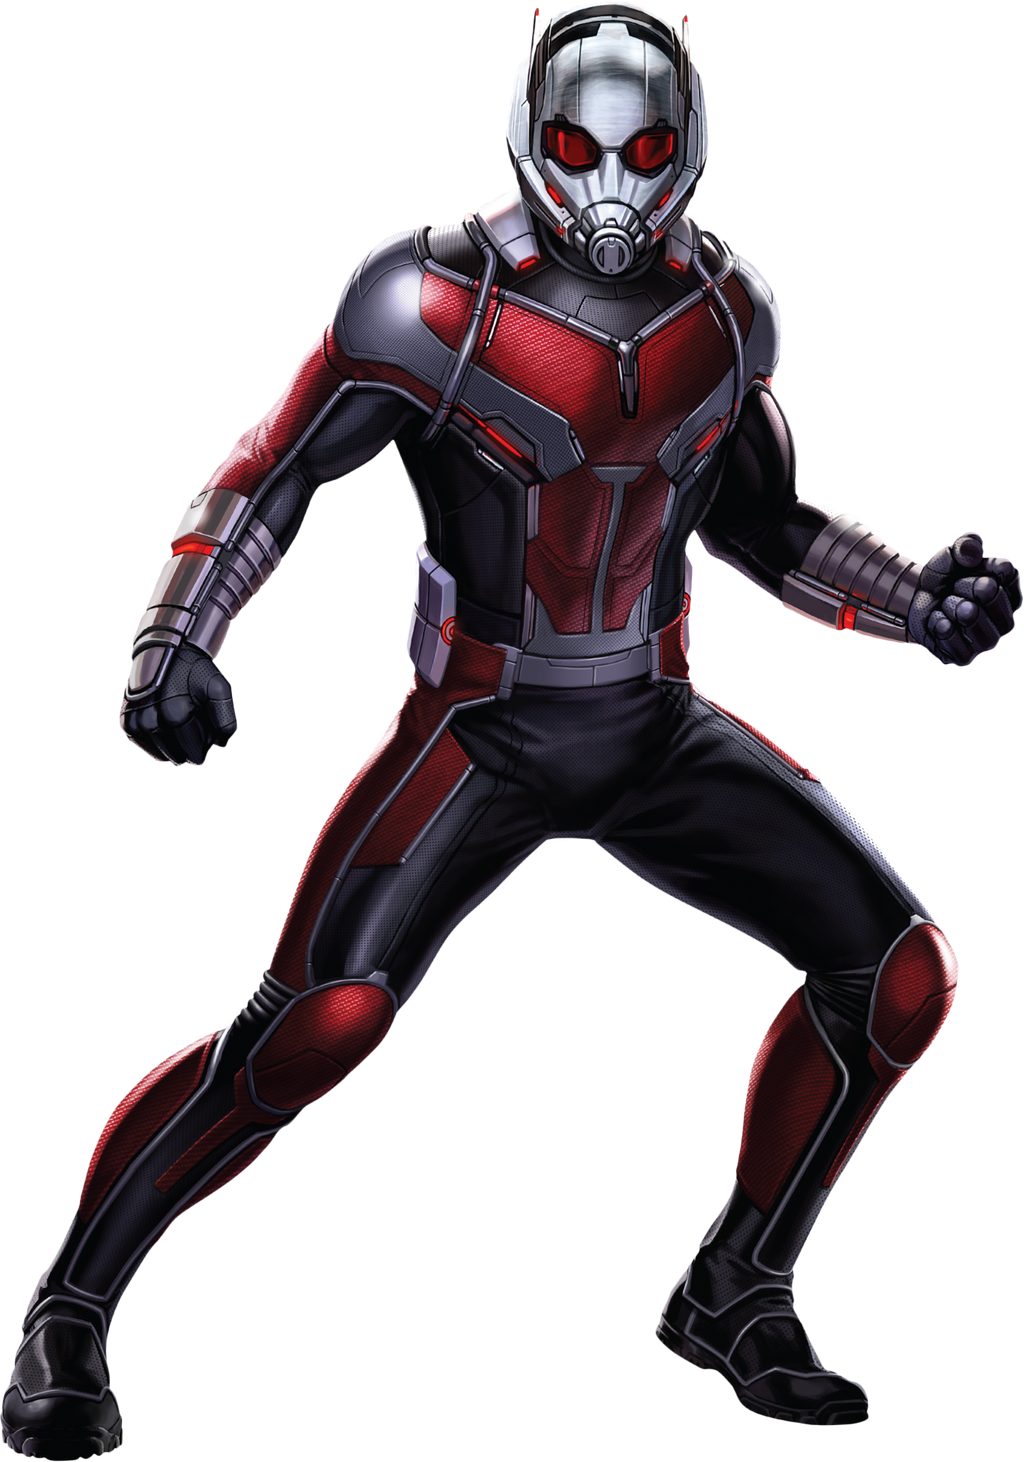 Ready To Attack Ant Man Photo 27442